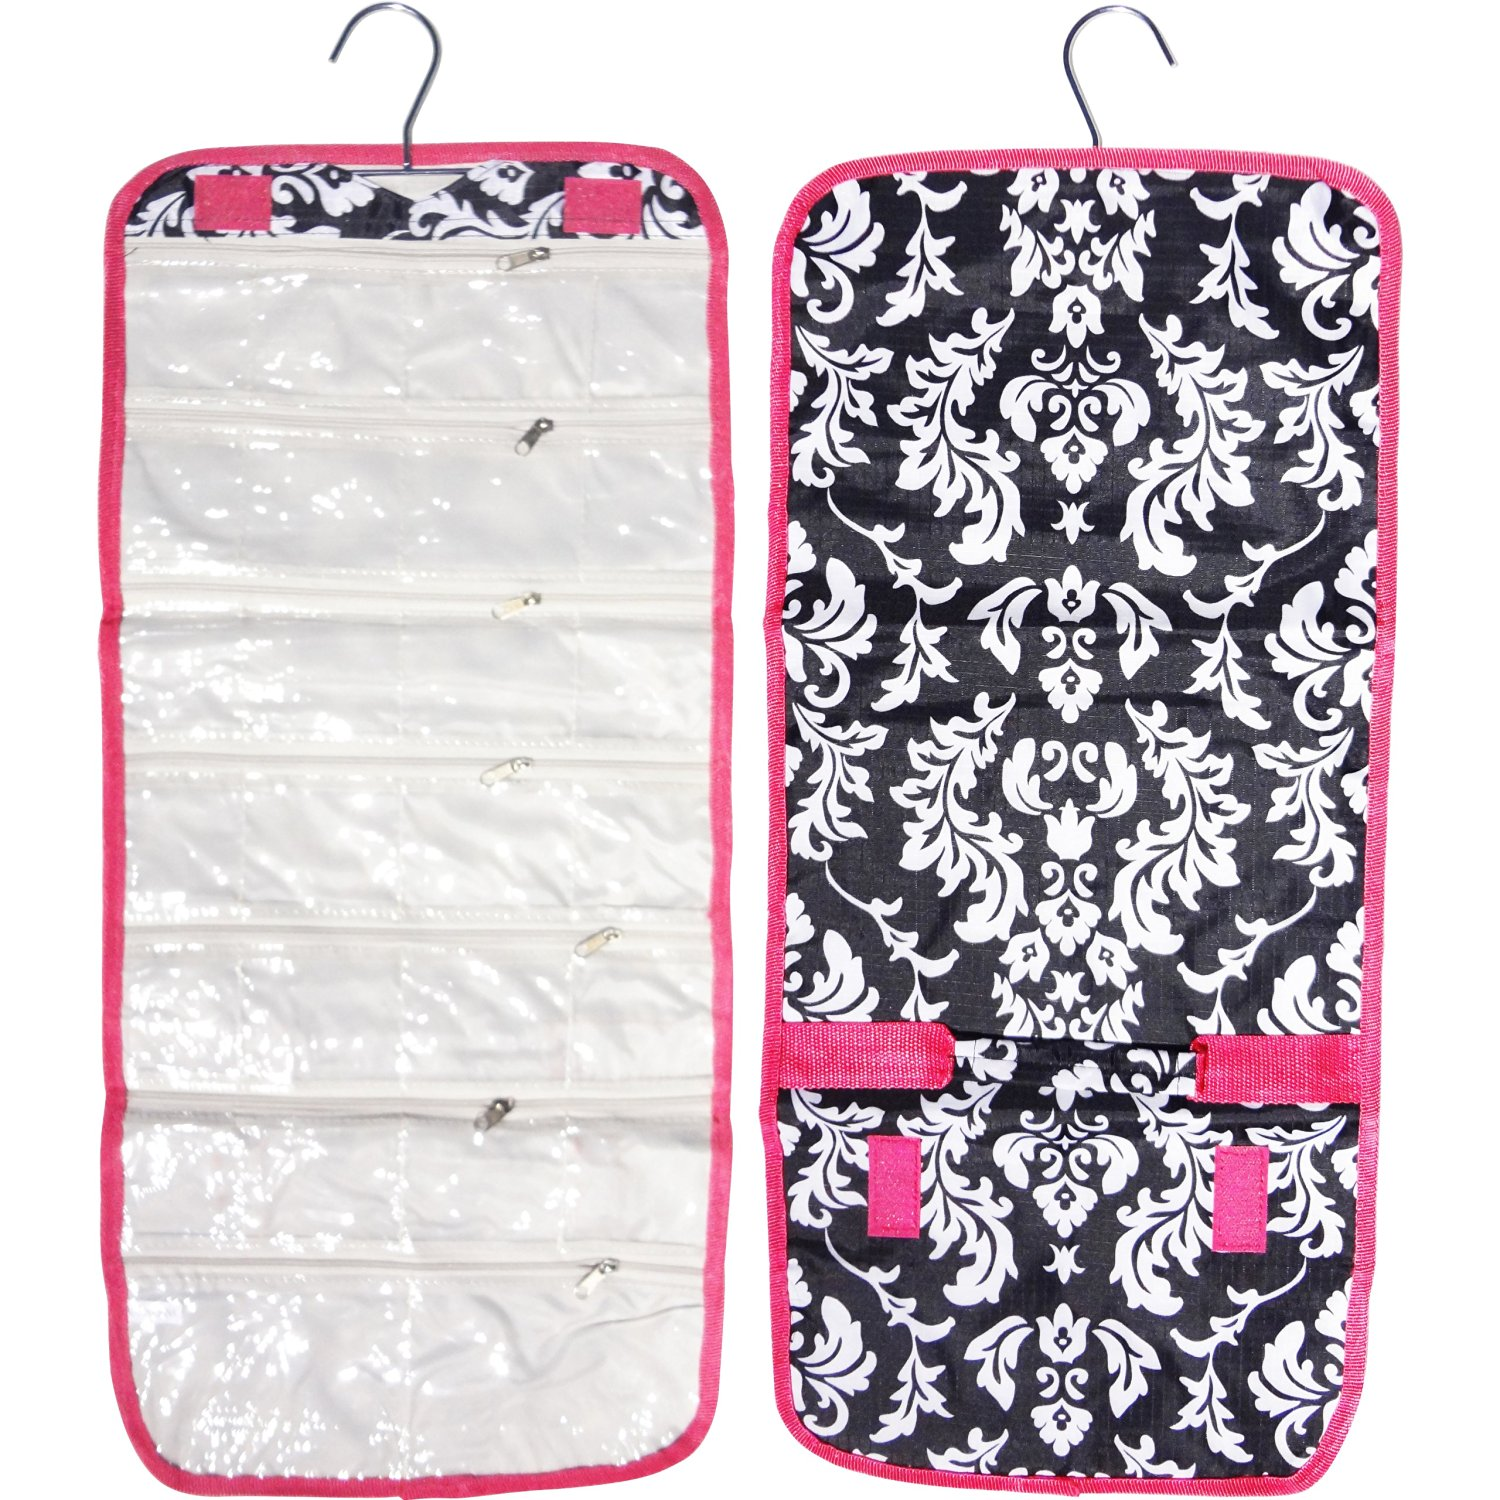 Buy Popular Damask Pink Trim Hanging Jewelry Hanger Travel Bag Roll